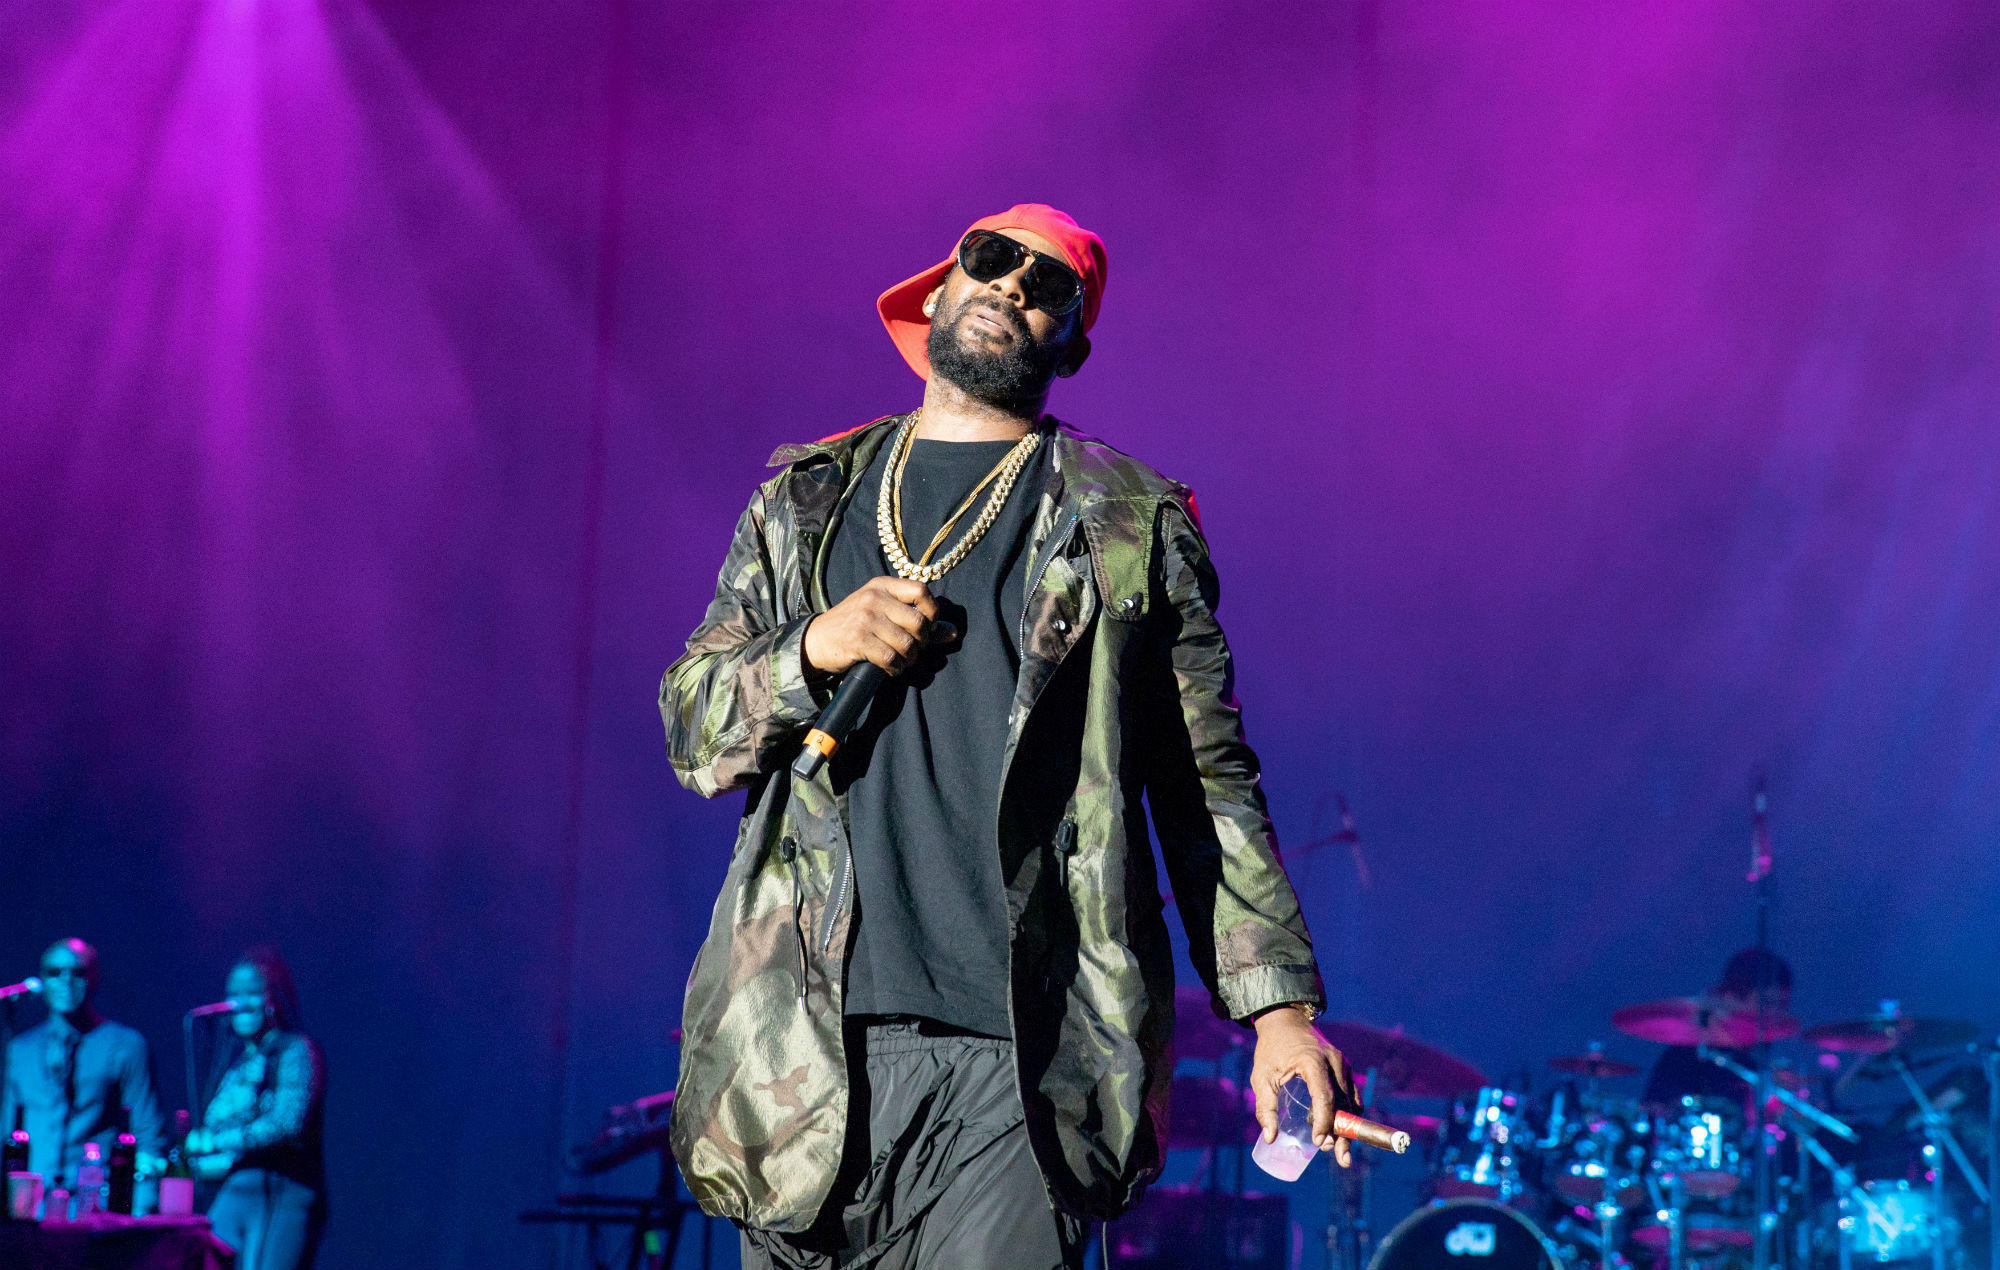 Footage shows R. Kelly letting fans towel him off and grab his crotch during Tampa show https://t.co/ZnW6akb5BH https://t.co/MBN87peD0B